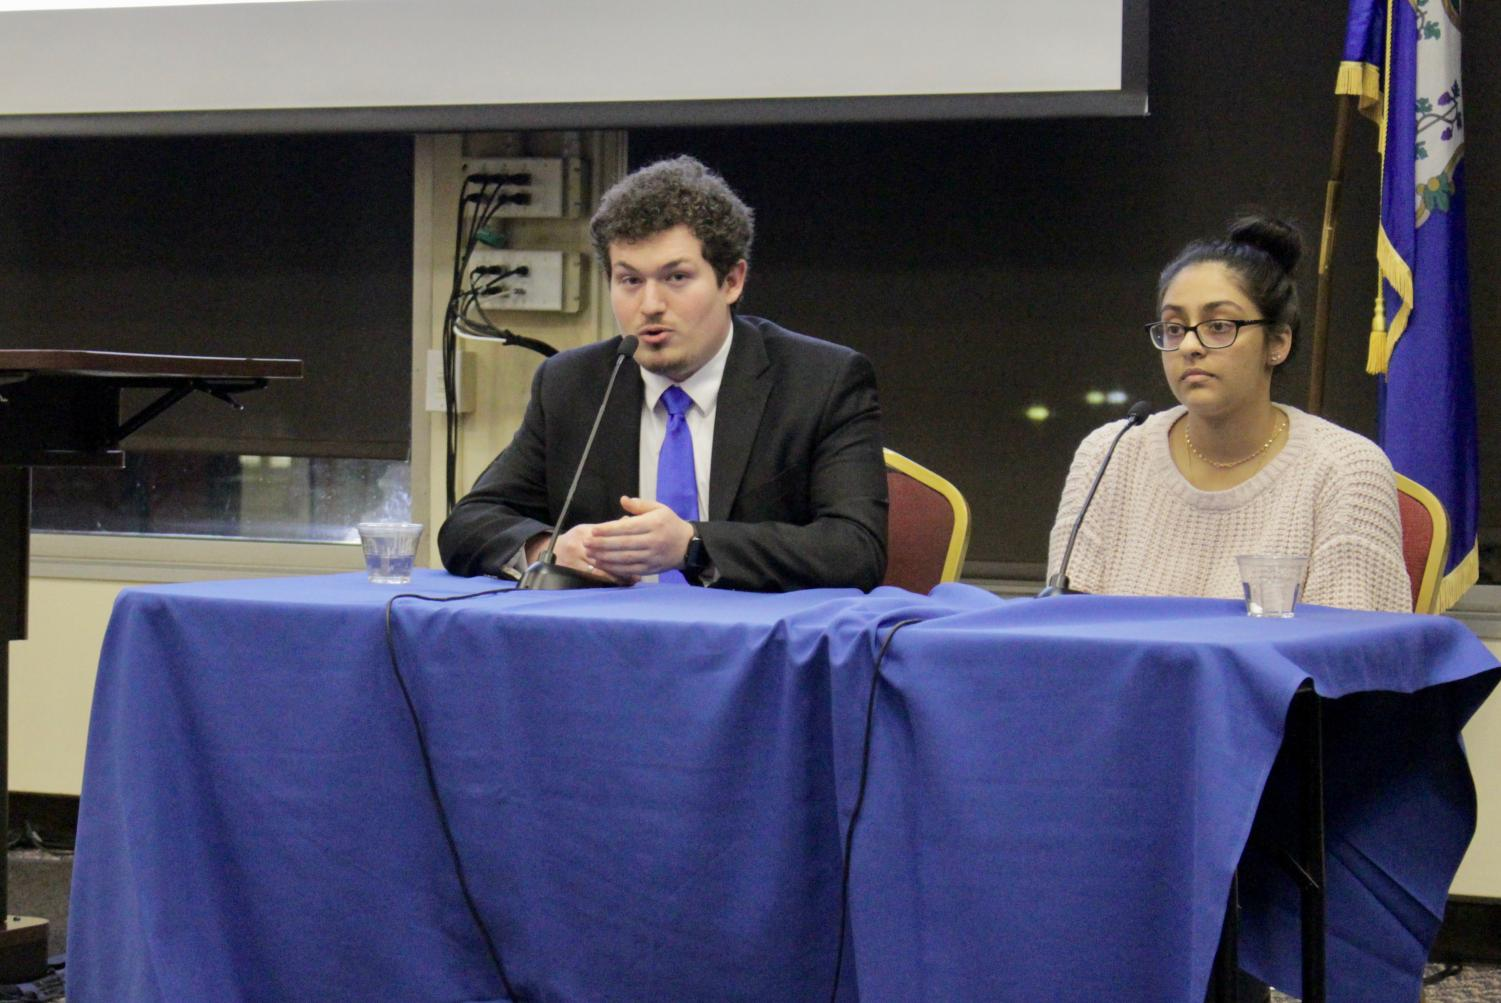 SGA presidential candidates Vice President Dante Solano, left, and Senator Roshanay Tahir, right, vouched for their campaigns at Monday's SGA debate.